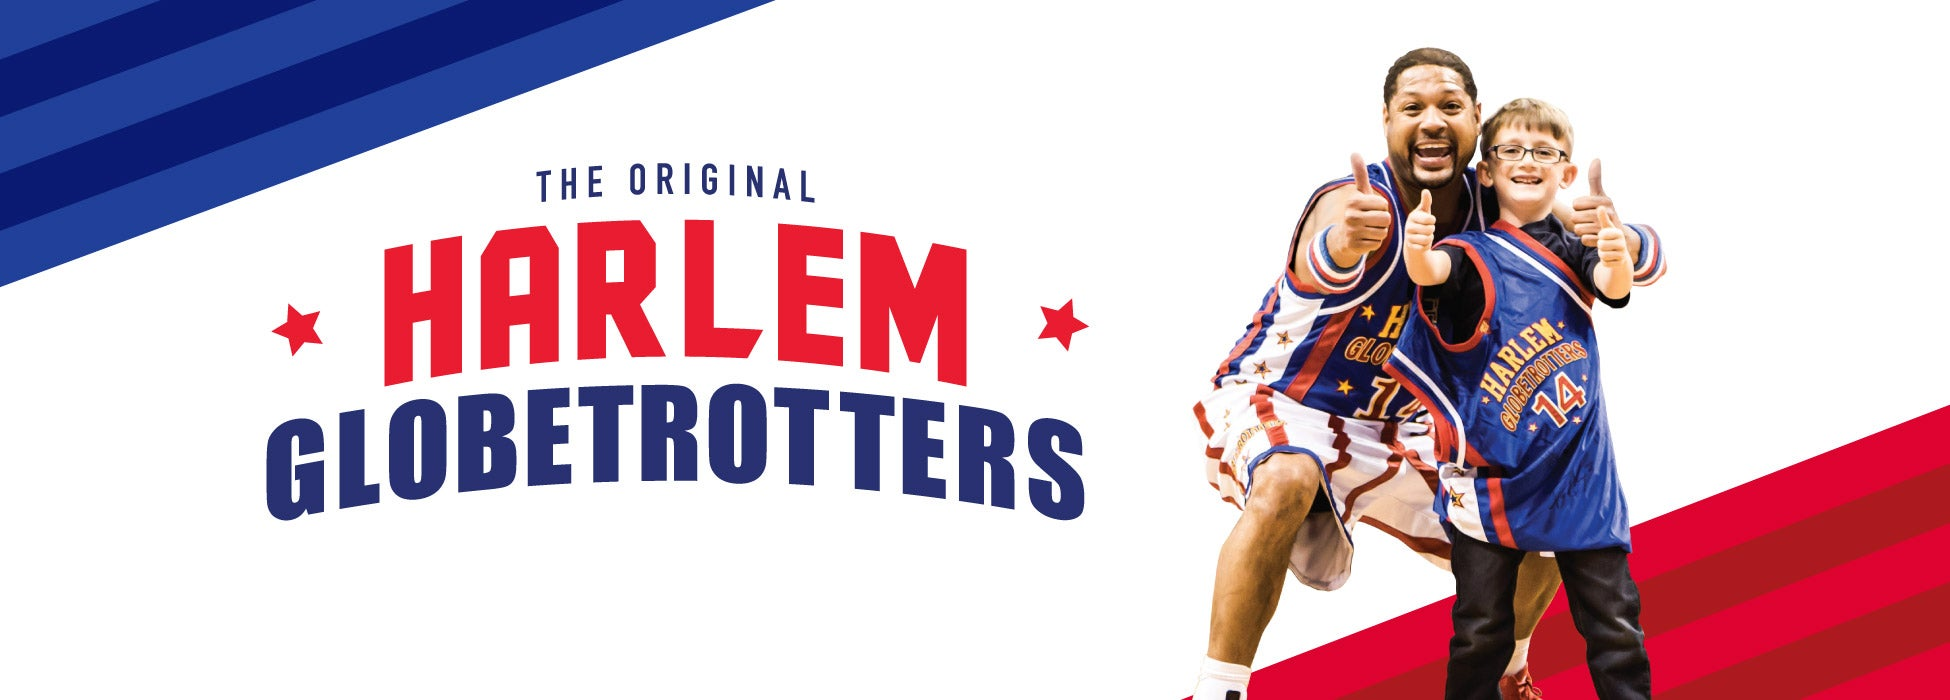 Updated-Globetrotters_1950x700.jpg